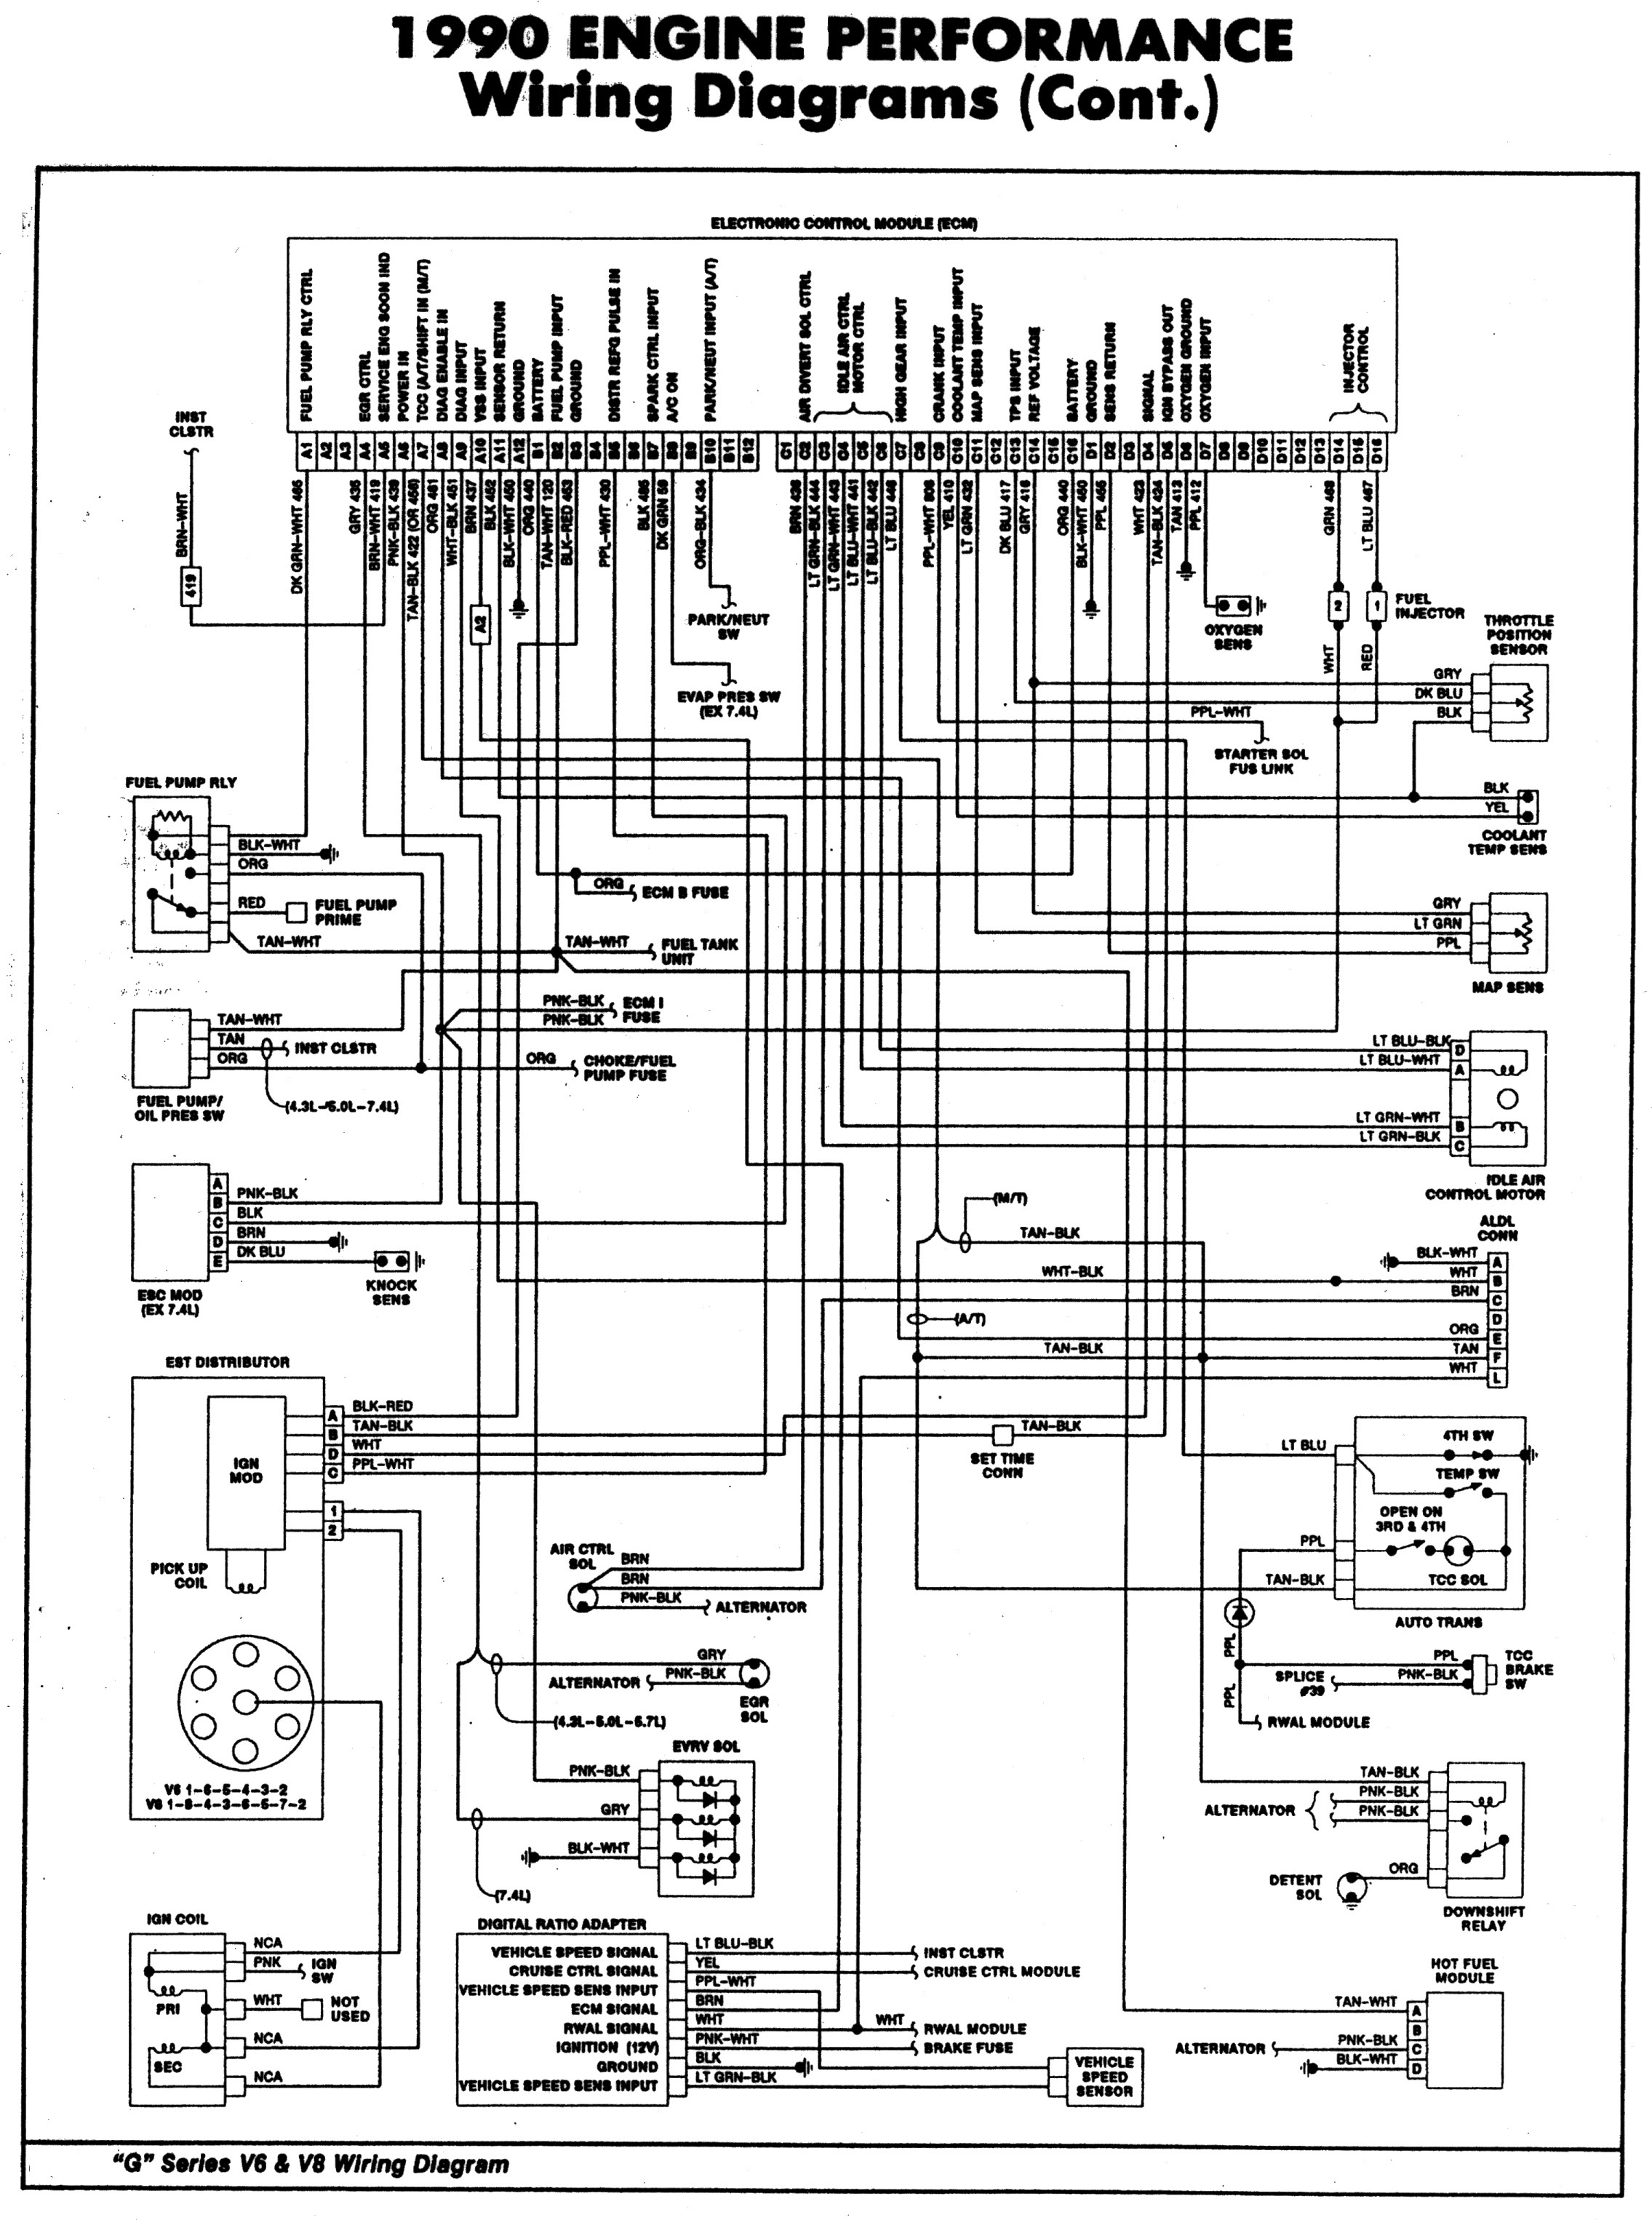 1977 cadillac engine wire schematic